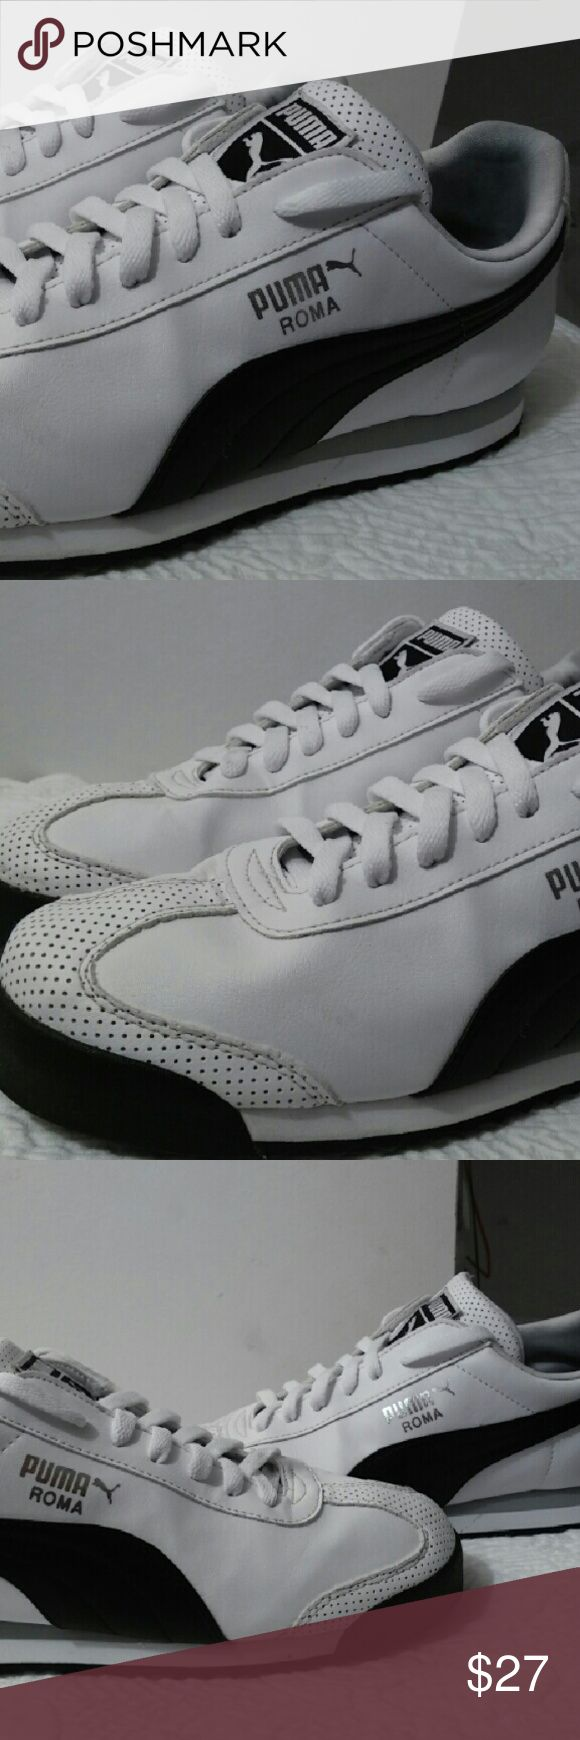 Men's PUMA SNEAKERS Shoes in near new condition worn at least 4 times...Perfect for all your casual activities and willing to look smart on your weekends.shoes has the original color as black and white...a very bright white...200% authentic and very durable piece. Puma Shoes Sandals & Flip-Flops